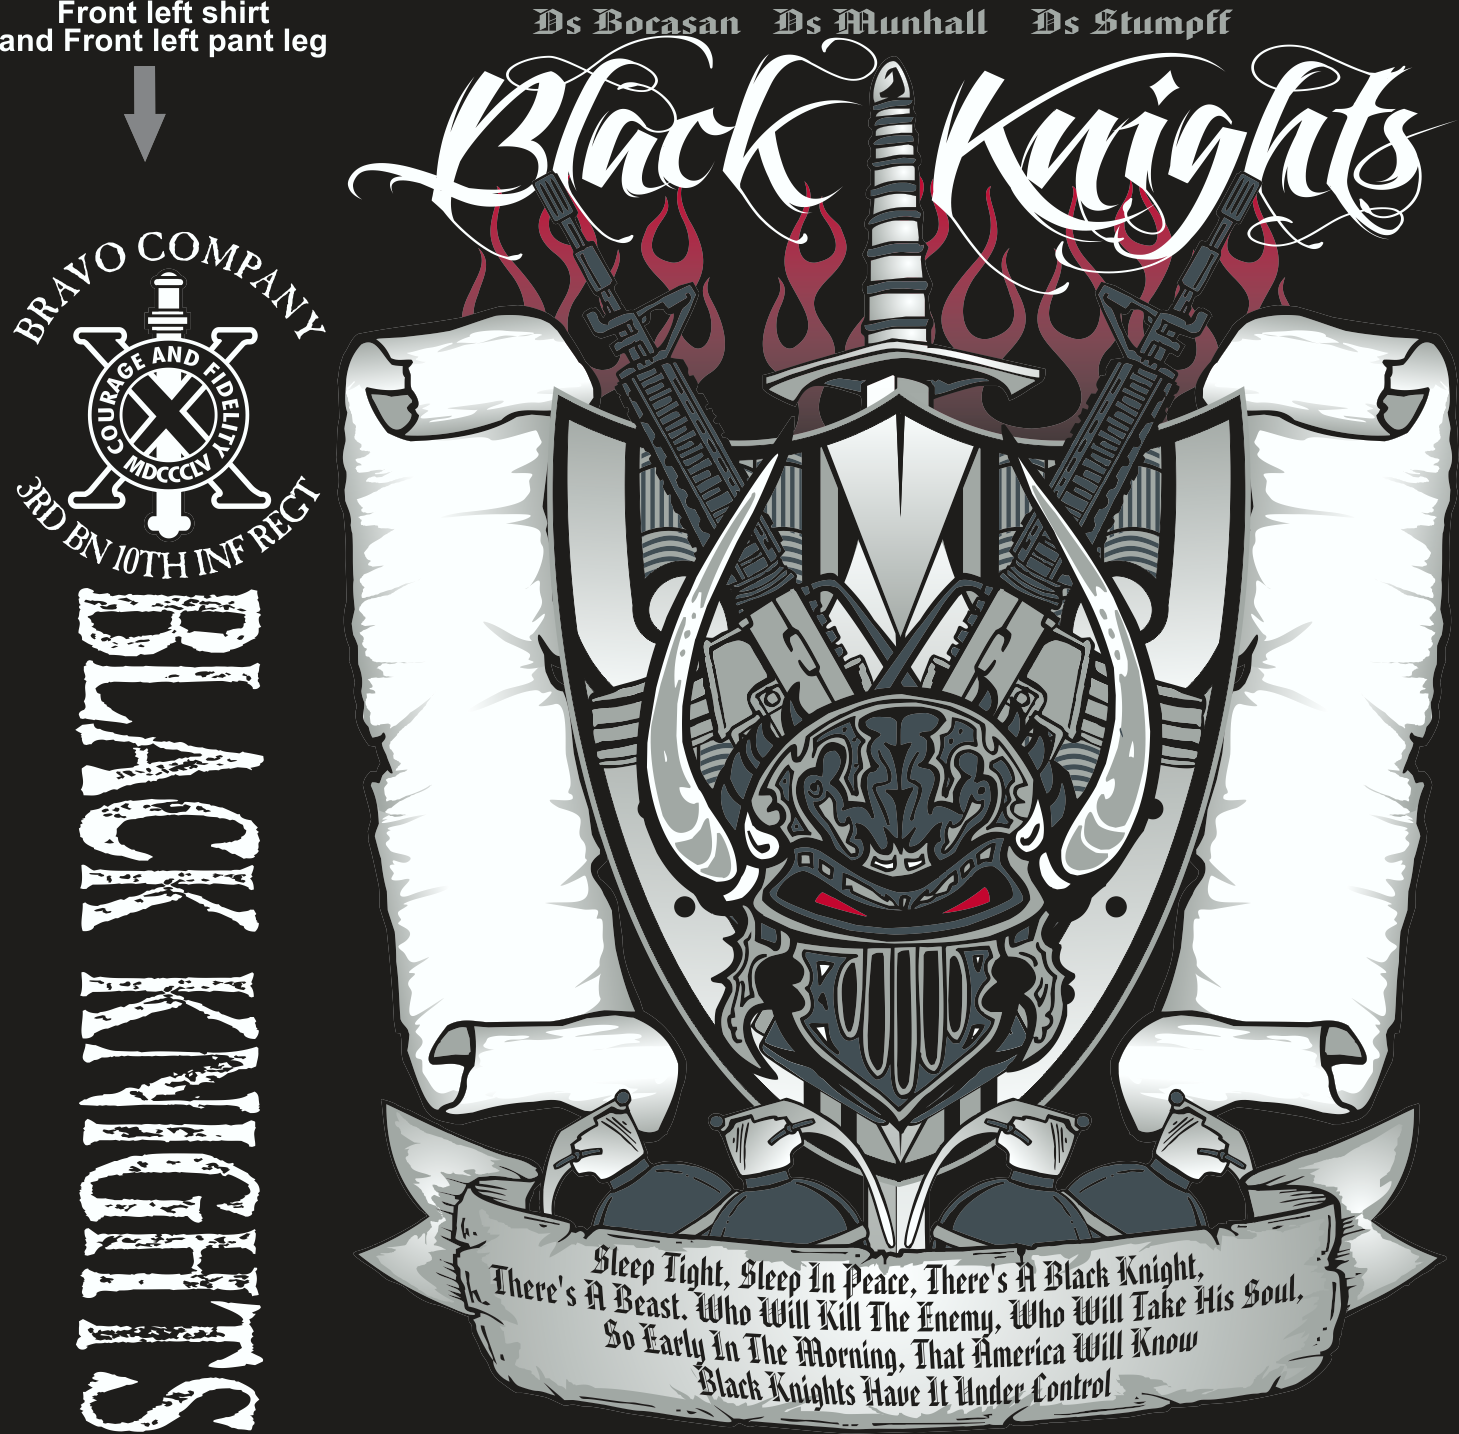 BRAVO 3-10 BLACK KNIGHTS GRADUATING DAY 3-17-2016 digital